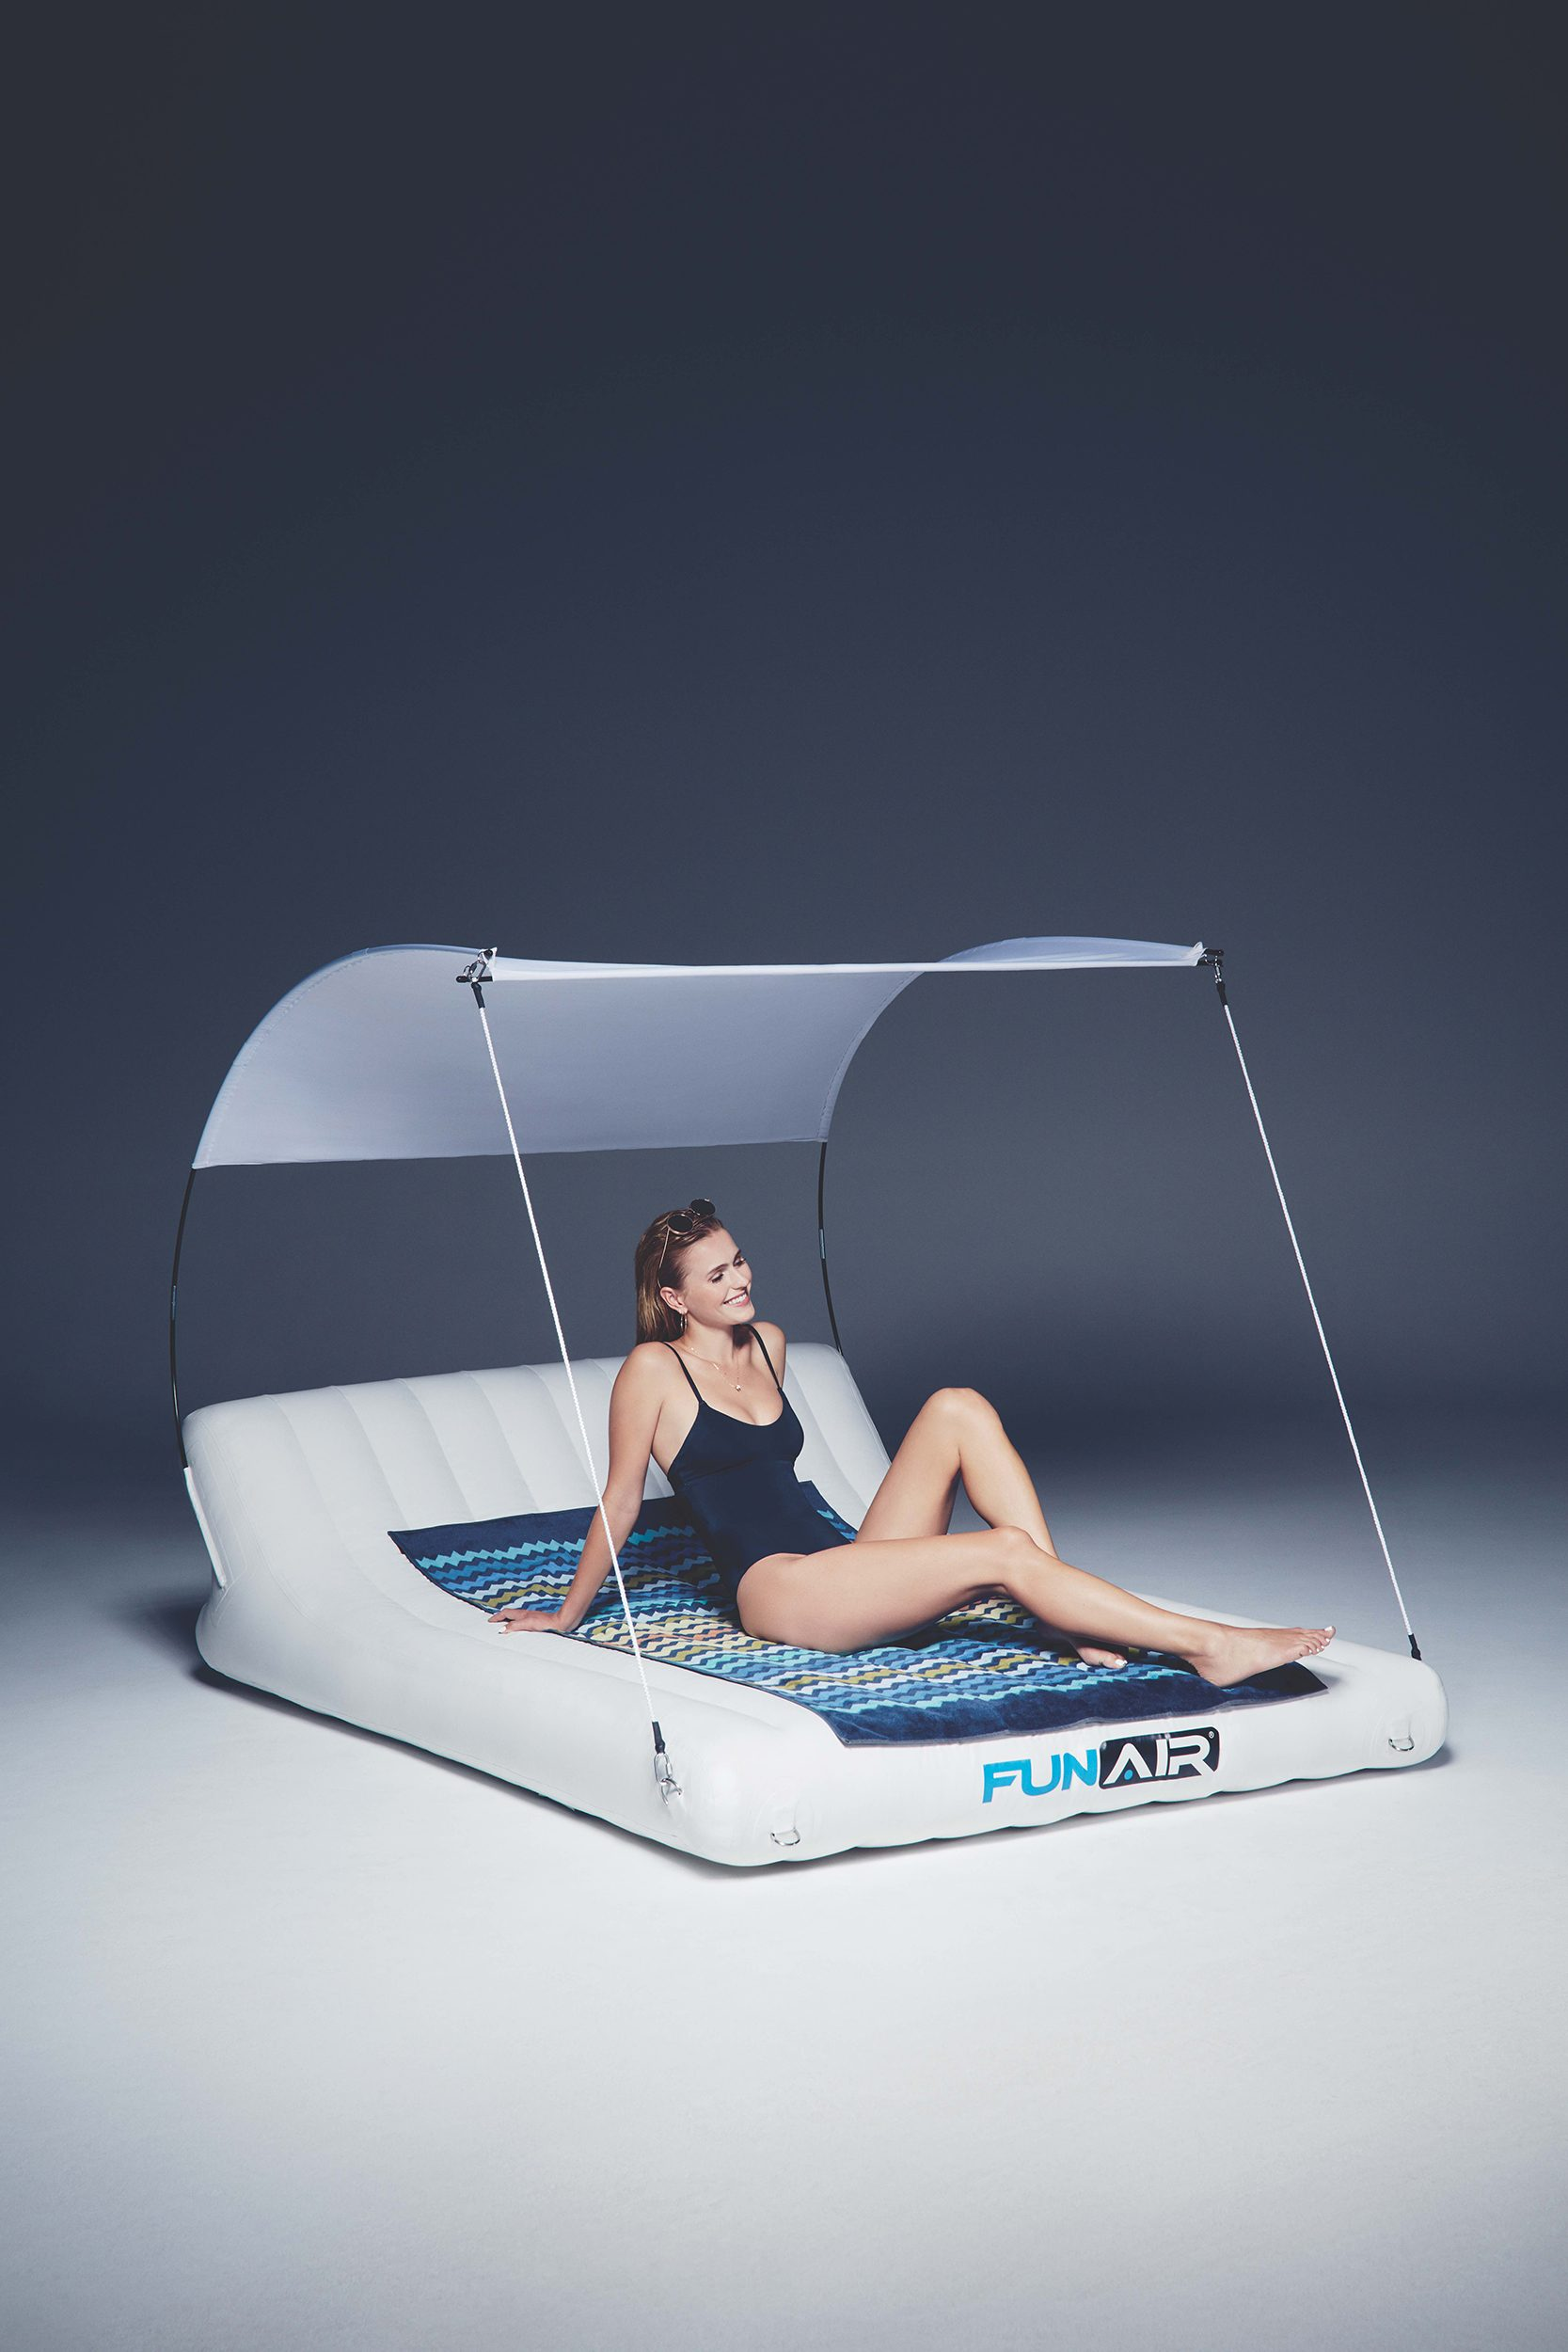 Woman using double shaded inflatable sun lounger